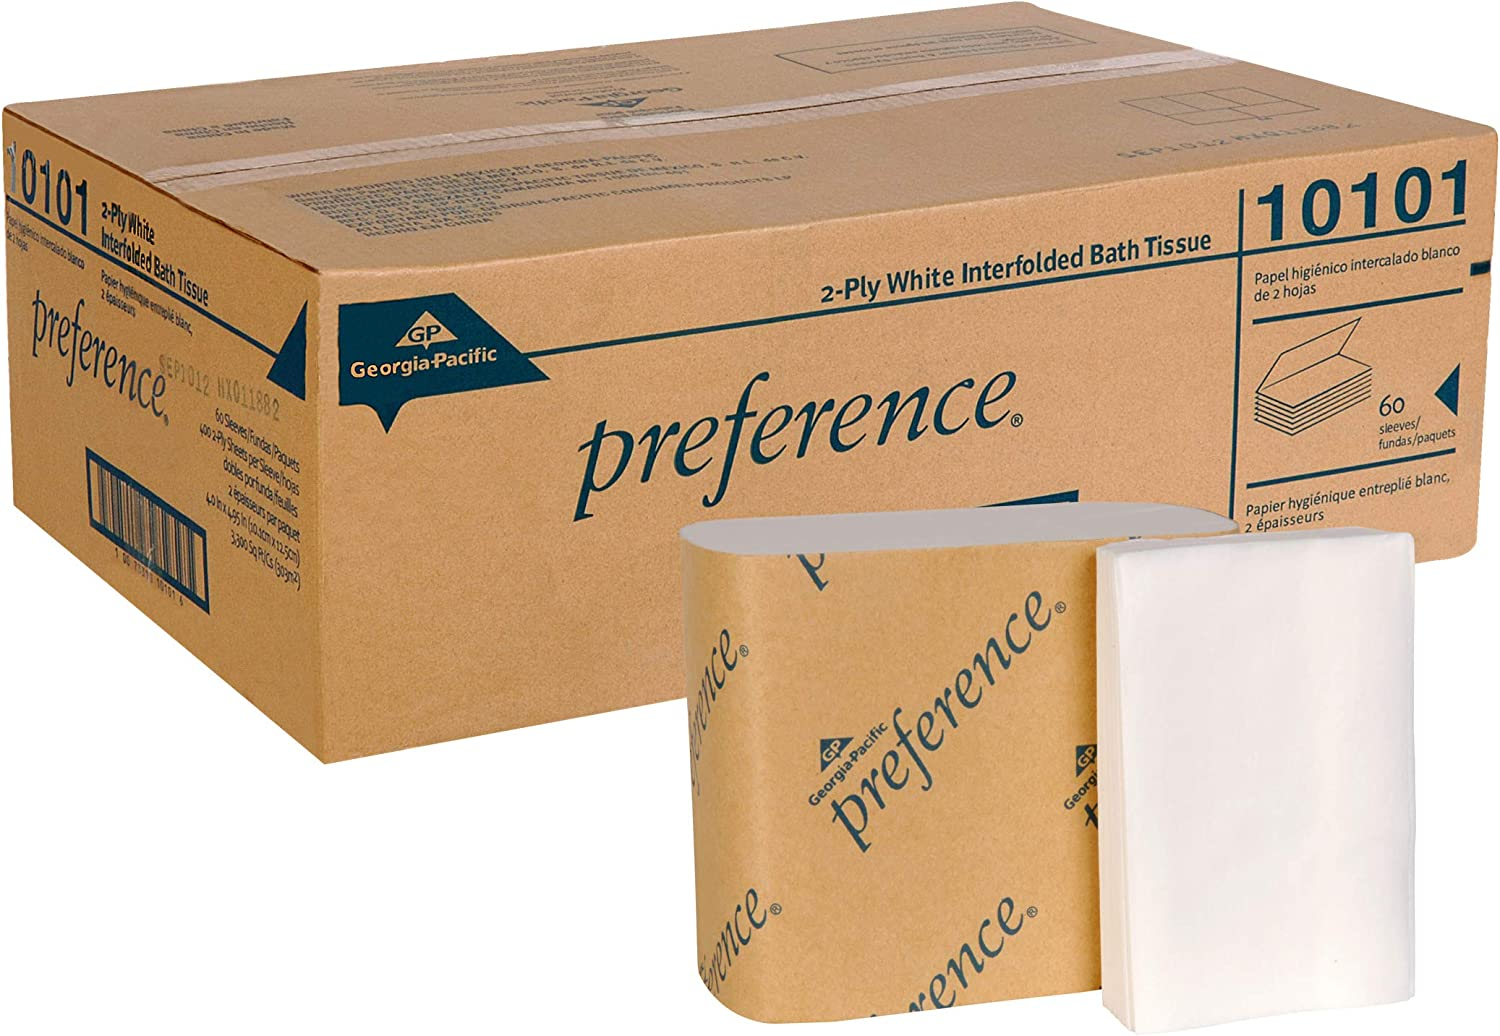 Preference 2-Ply Interfolded Toilet Paper by GP PRO (Georgia-Pacific), 10101, 400 Sheets Per Pack, 60 Packs Per Case, White